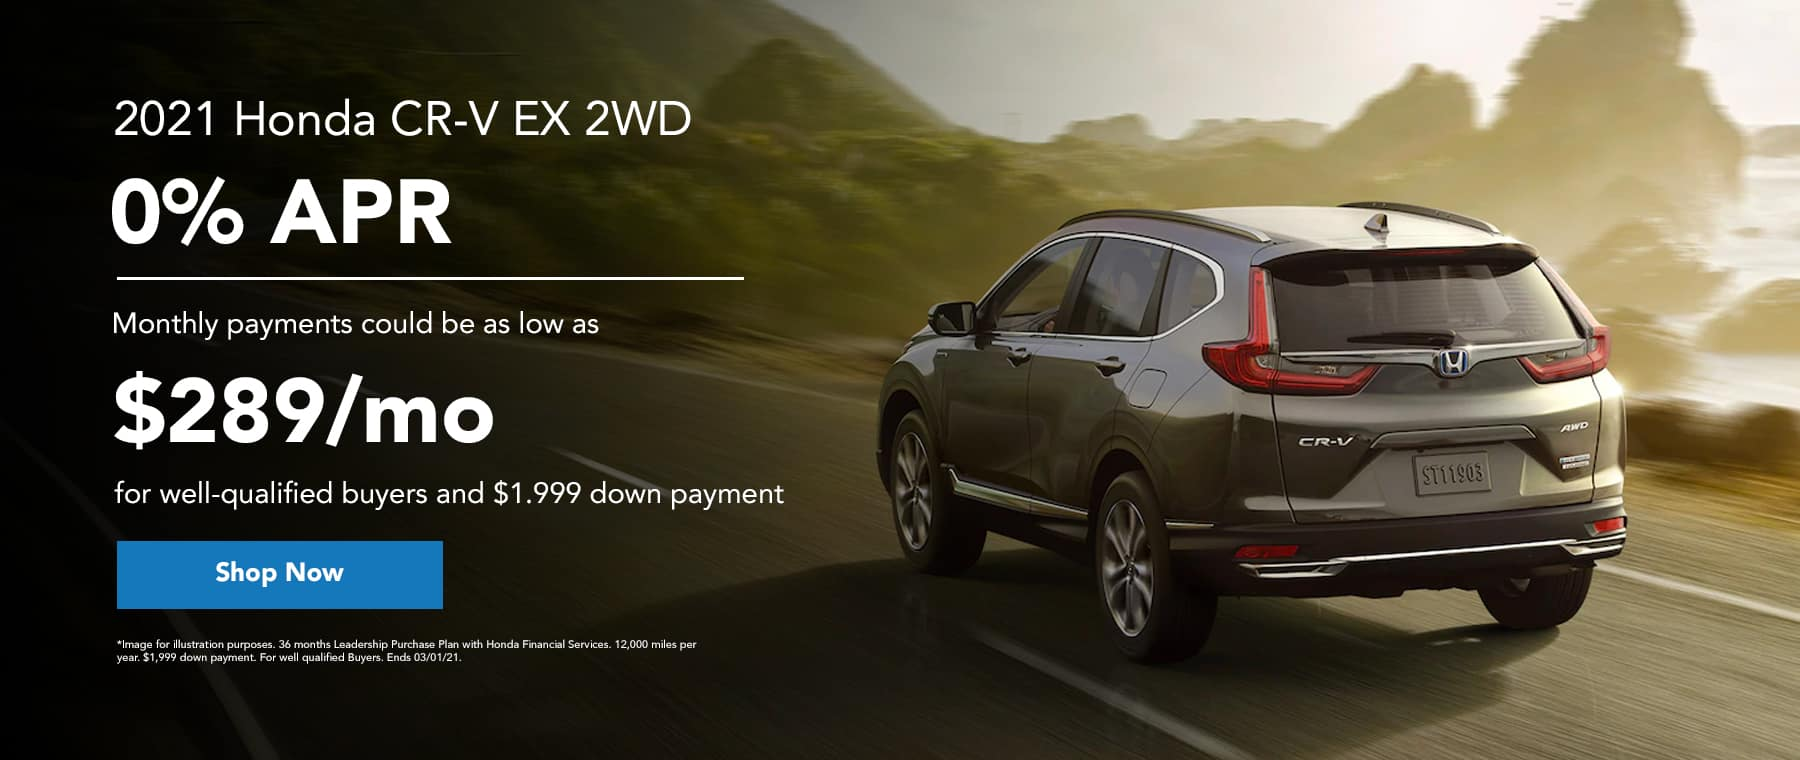 2021 Honda CR-V EX 2WD - 0% APR - monthly payments could be as low as $289/mo